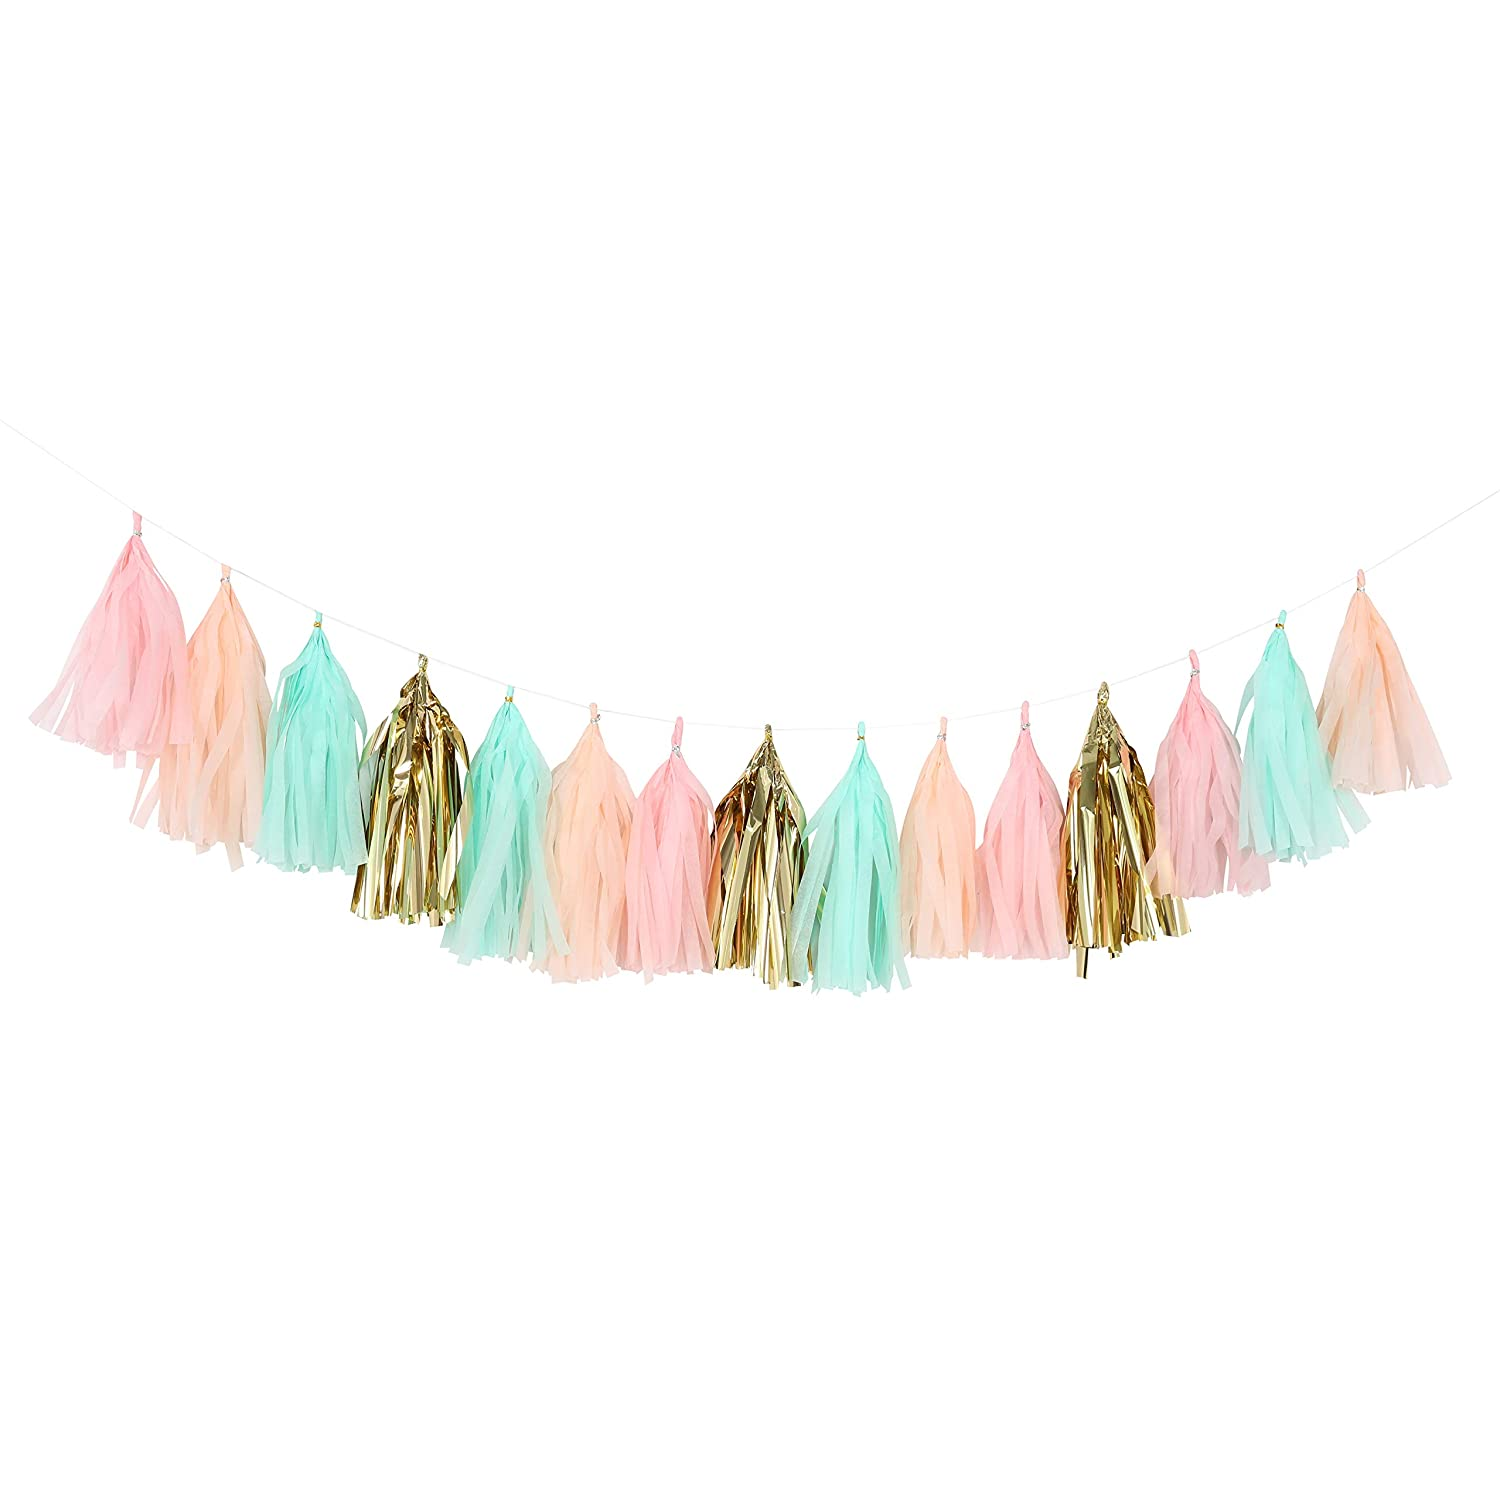 Fonder Mols Tissue Paper Tassels, Peach Cream and Mint Tassel Garland, Baby Shower Decoration, First Birthday Party, Shabby Chic Wedding Photo Backdrop A28